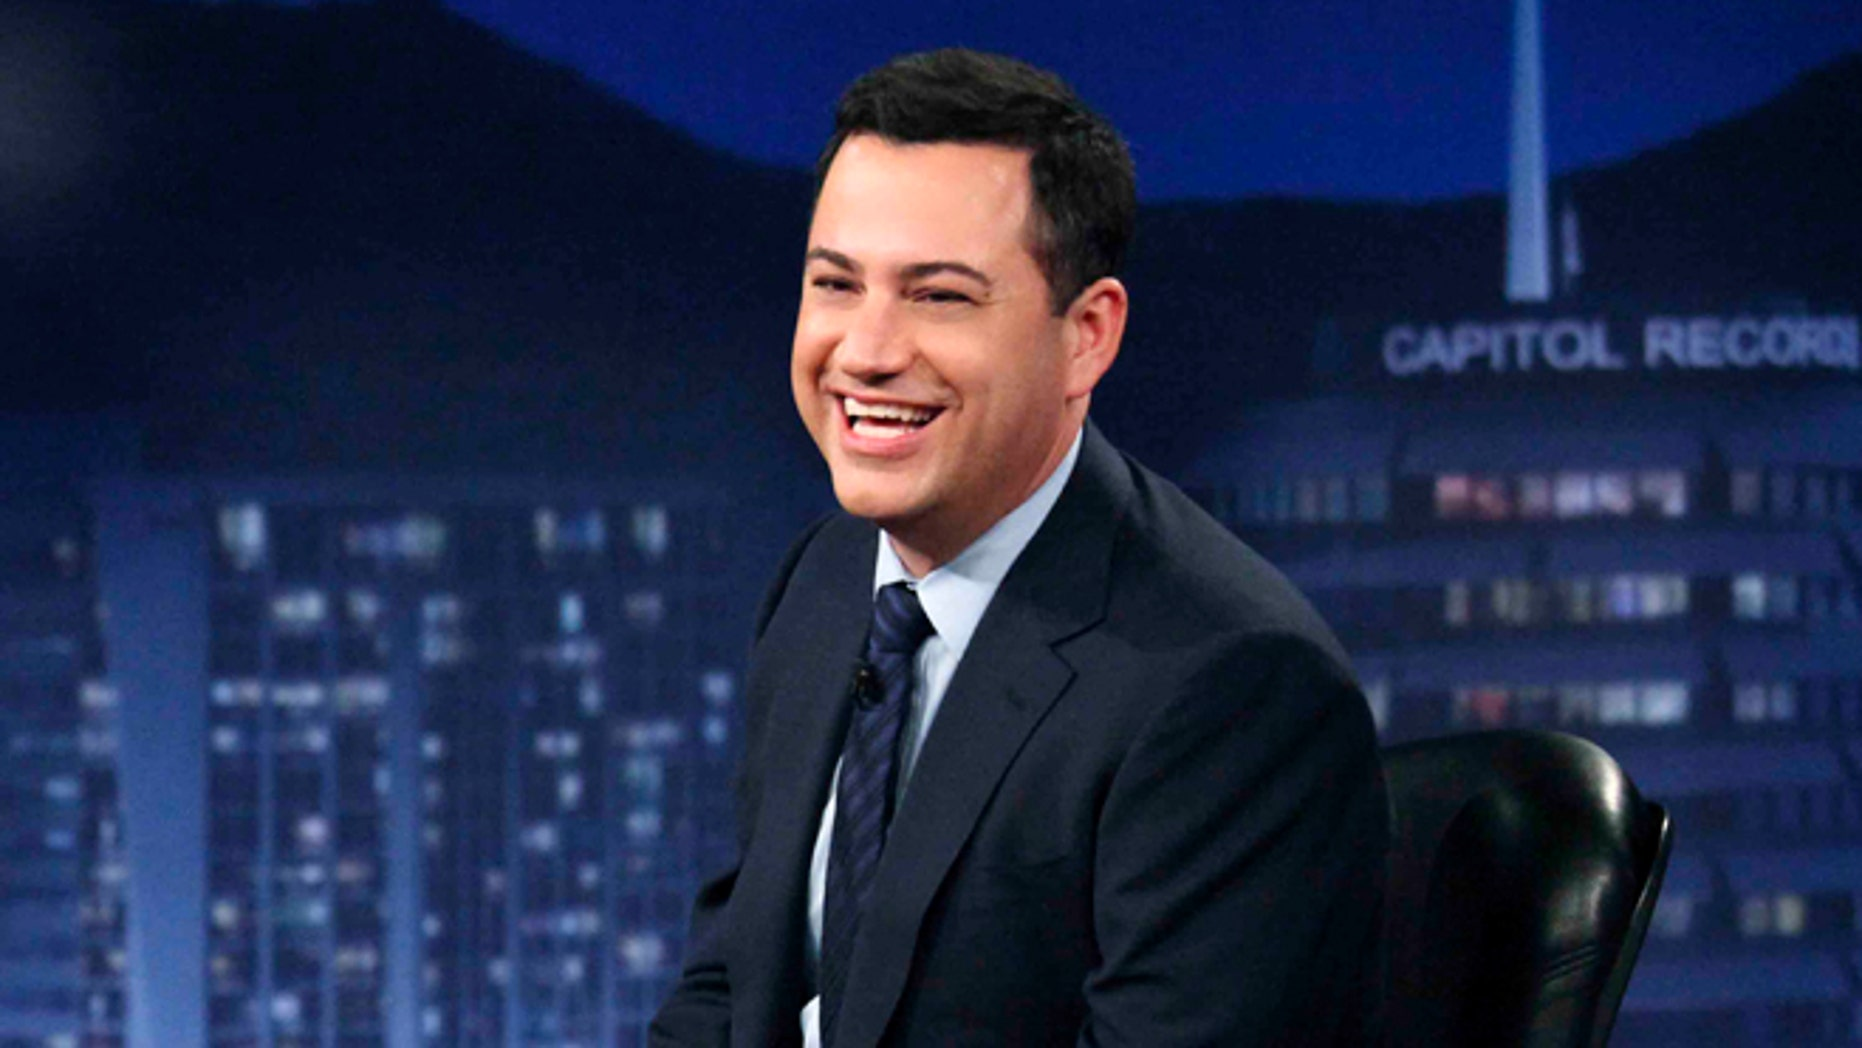 """This July 25, 2012 photo released by ABC shows Jimmy Kimmel hosting his late night show """"Jimmy Kimmel Live,"""" in the Hollywood section of Los Angeles."""